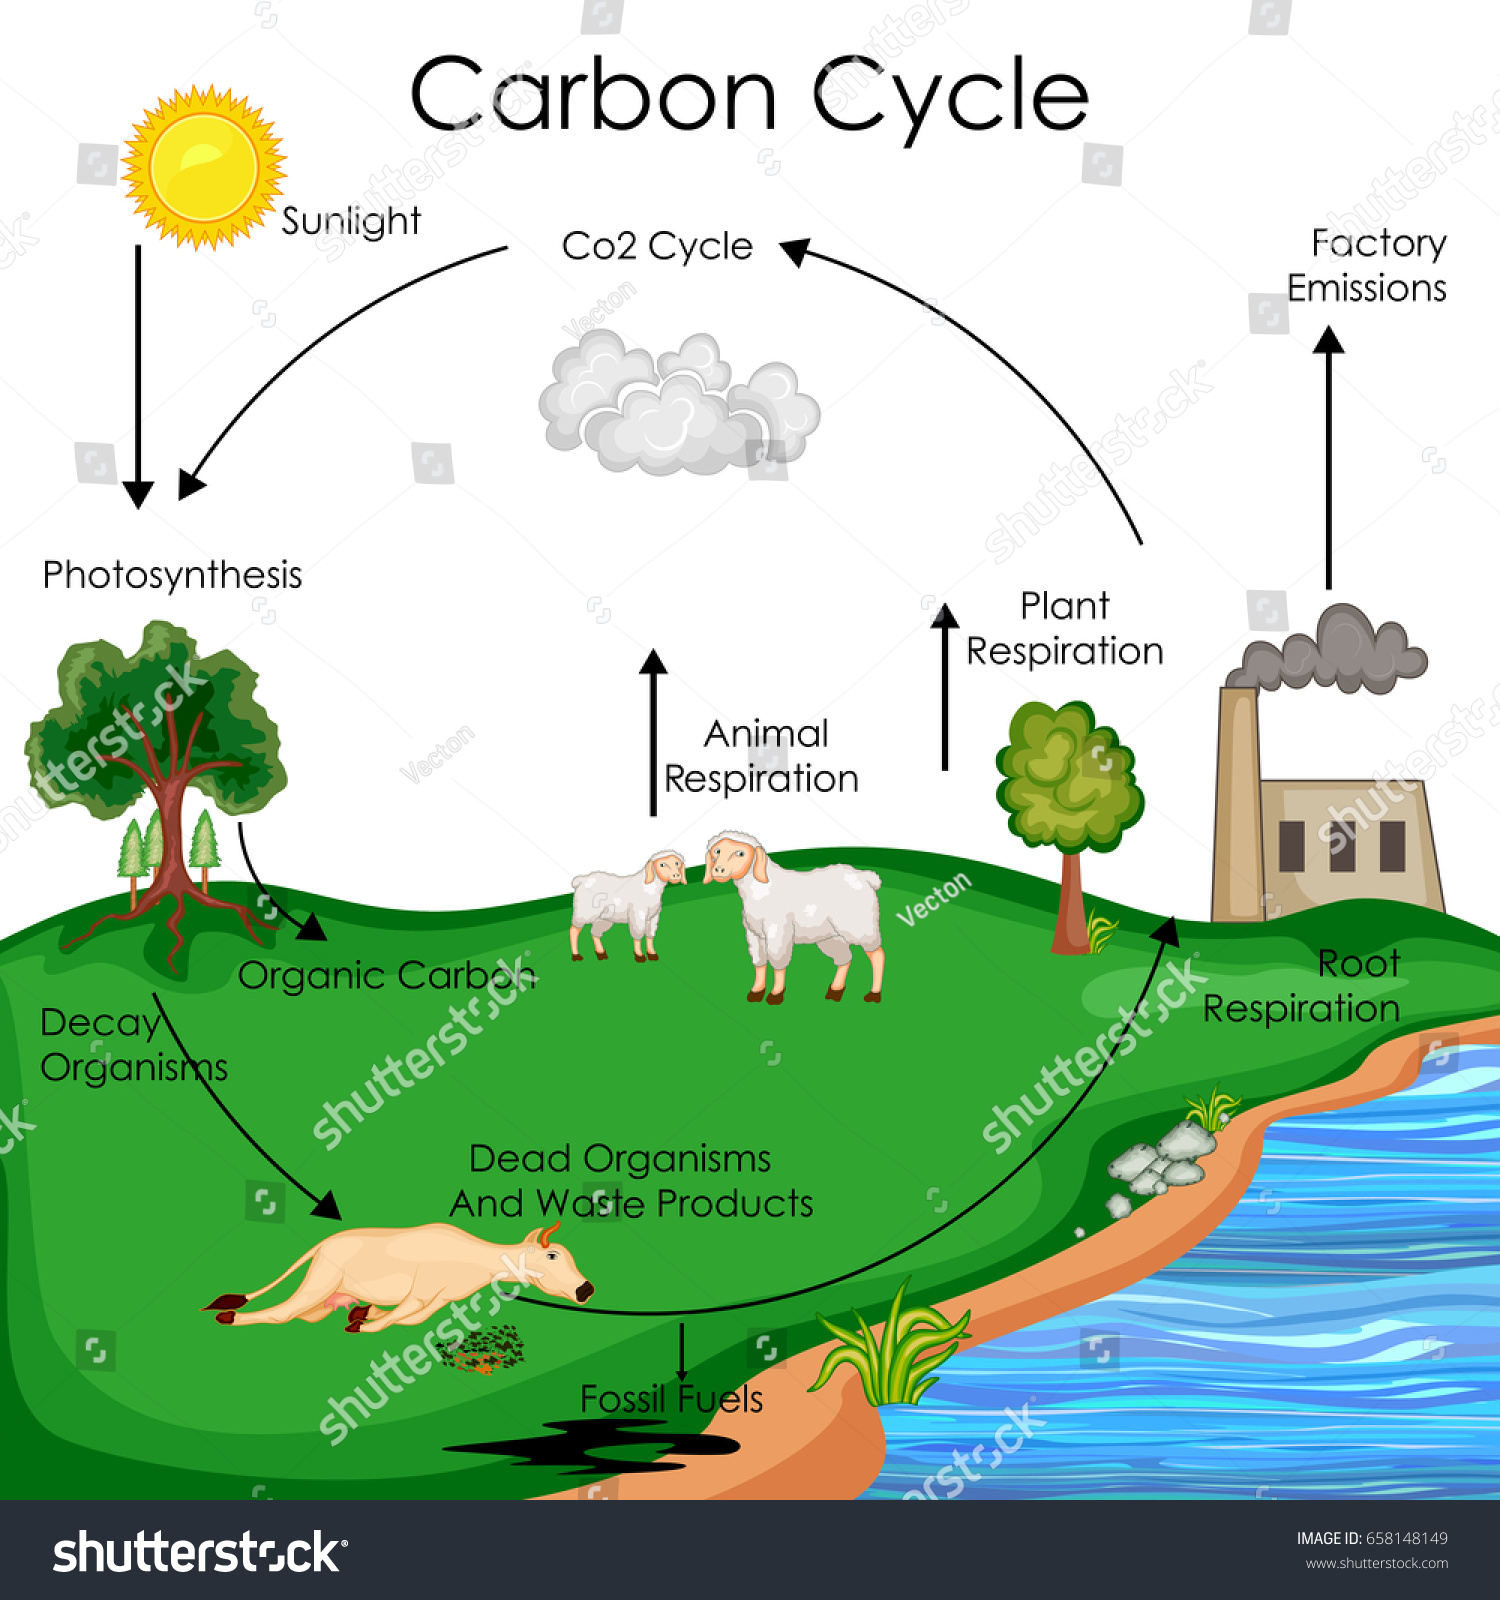 Education chart biology carbon cycle diagram em vetor stock education chart of biology for carbon cycle diagram vector illustration ccuart